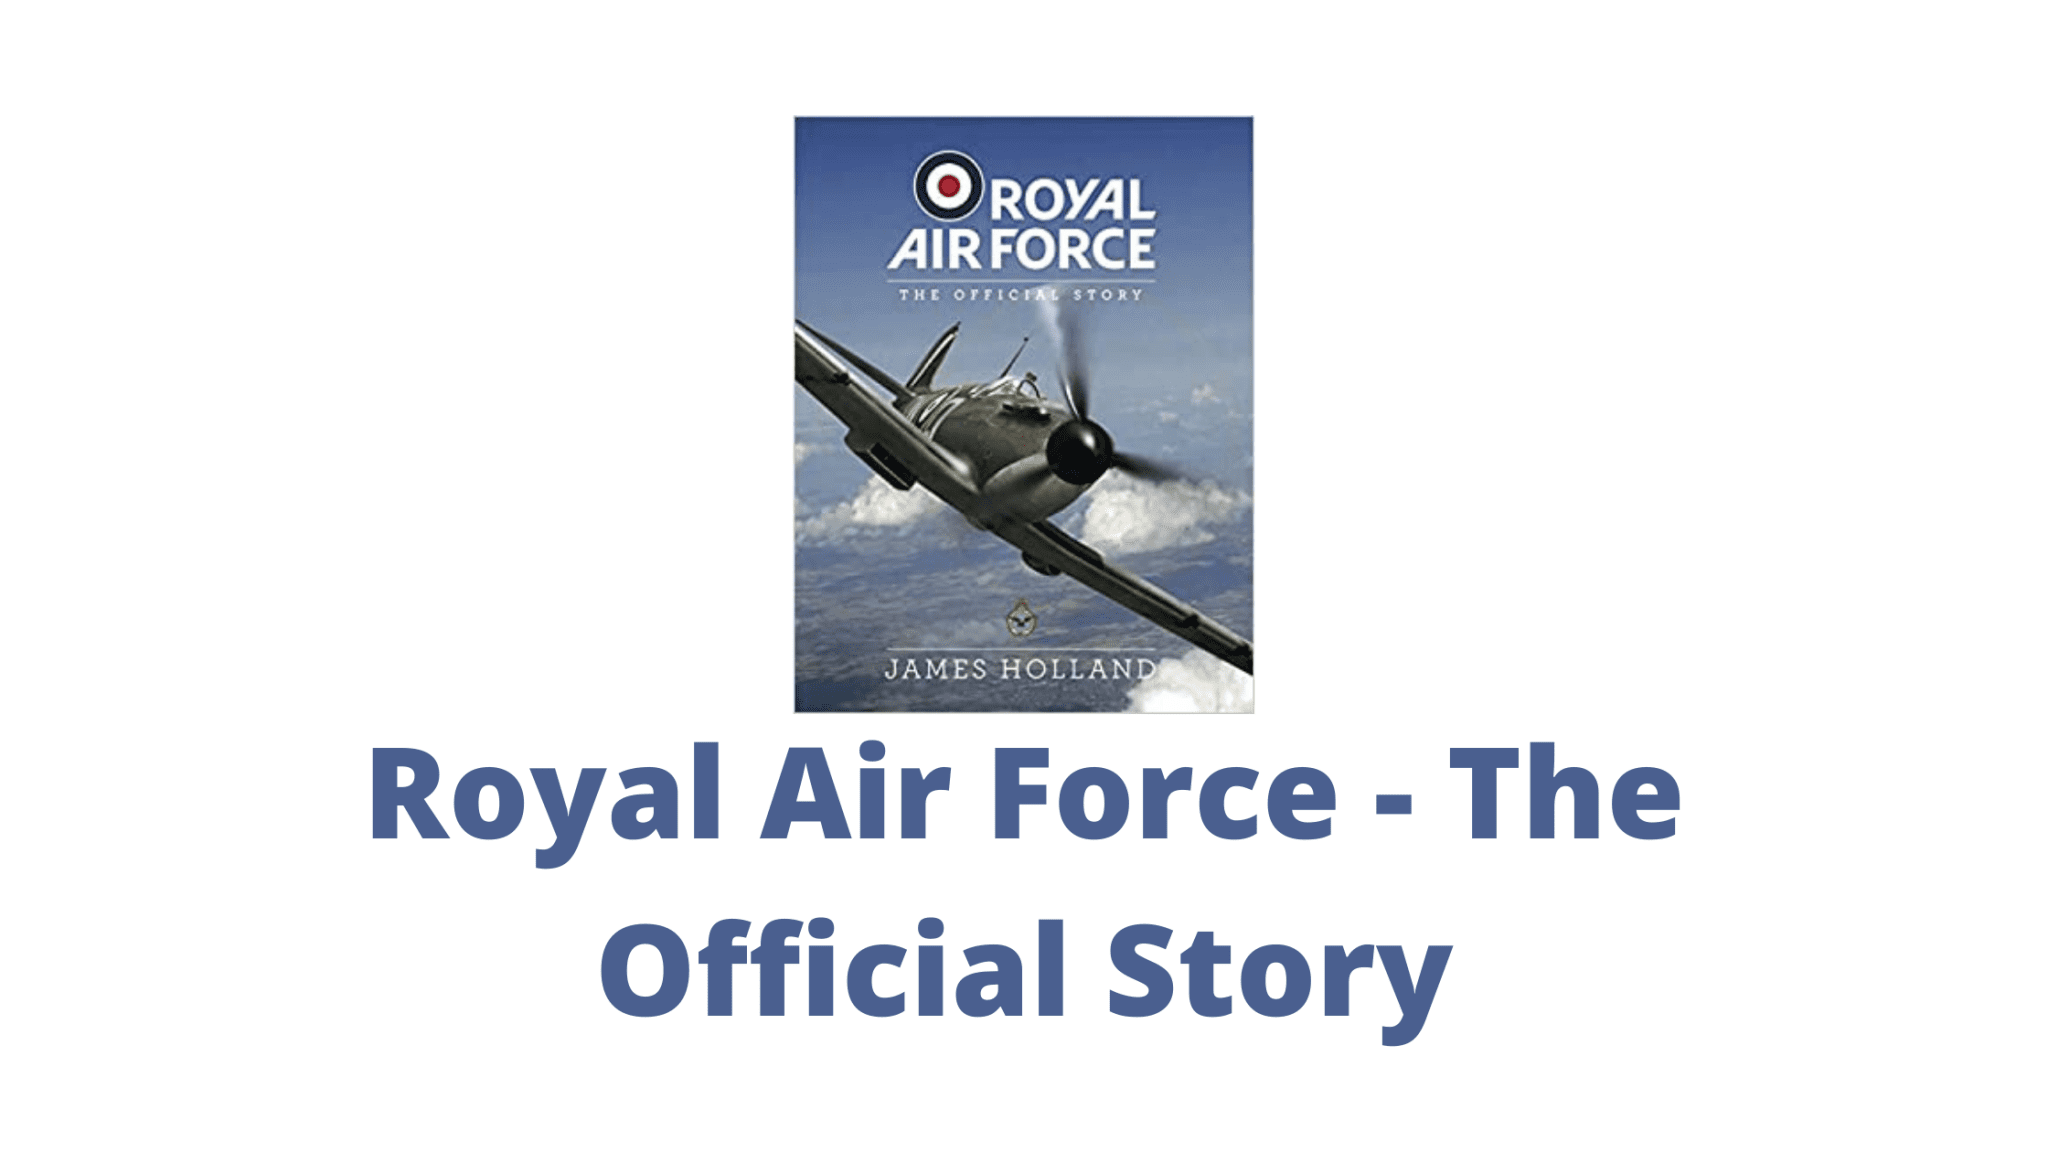 Royal Air Force - The Official Story